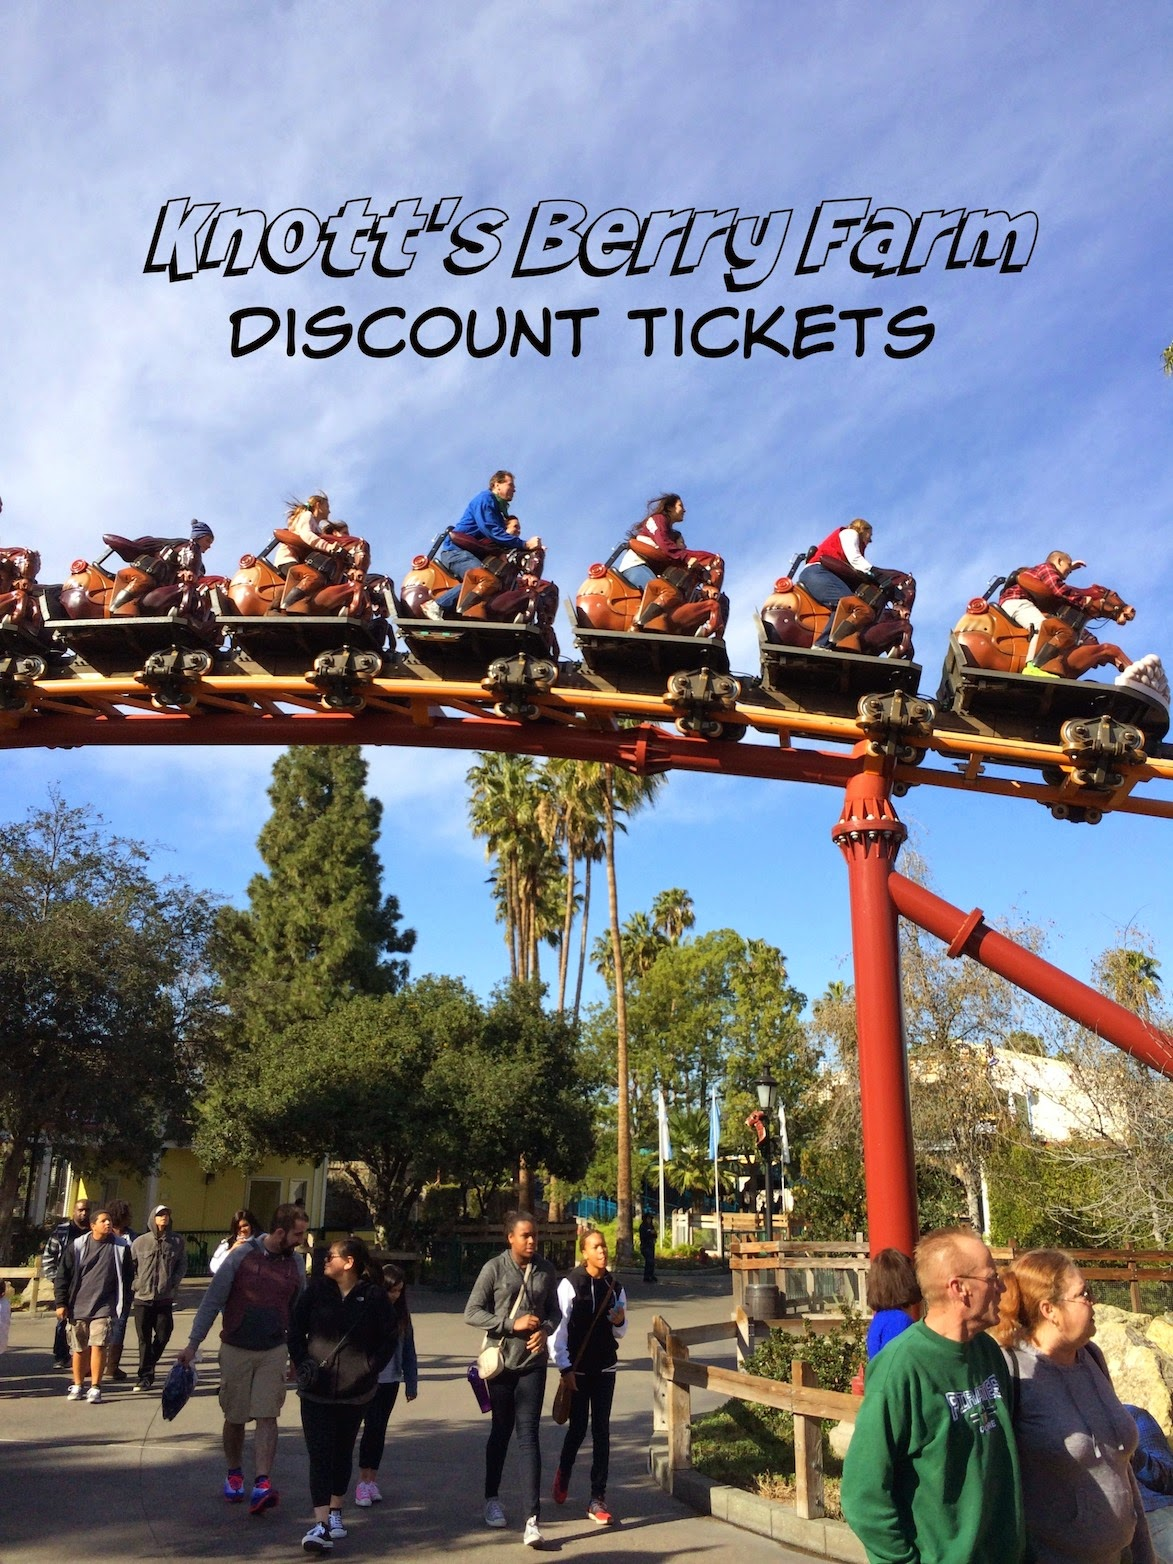 When you're looking for a great day out in California, Knott's Berry Farm is the Low Prices · Credit Cards · Group Tickets · Best OffersStores: Amazon, Eastbay, Groupon, Hotwire, Kohl's, Motel 6 and more.